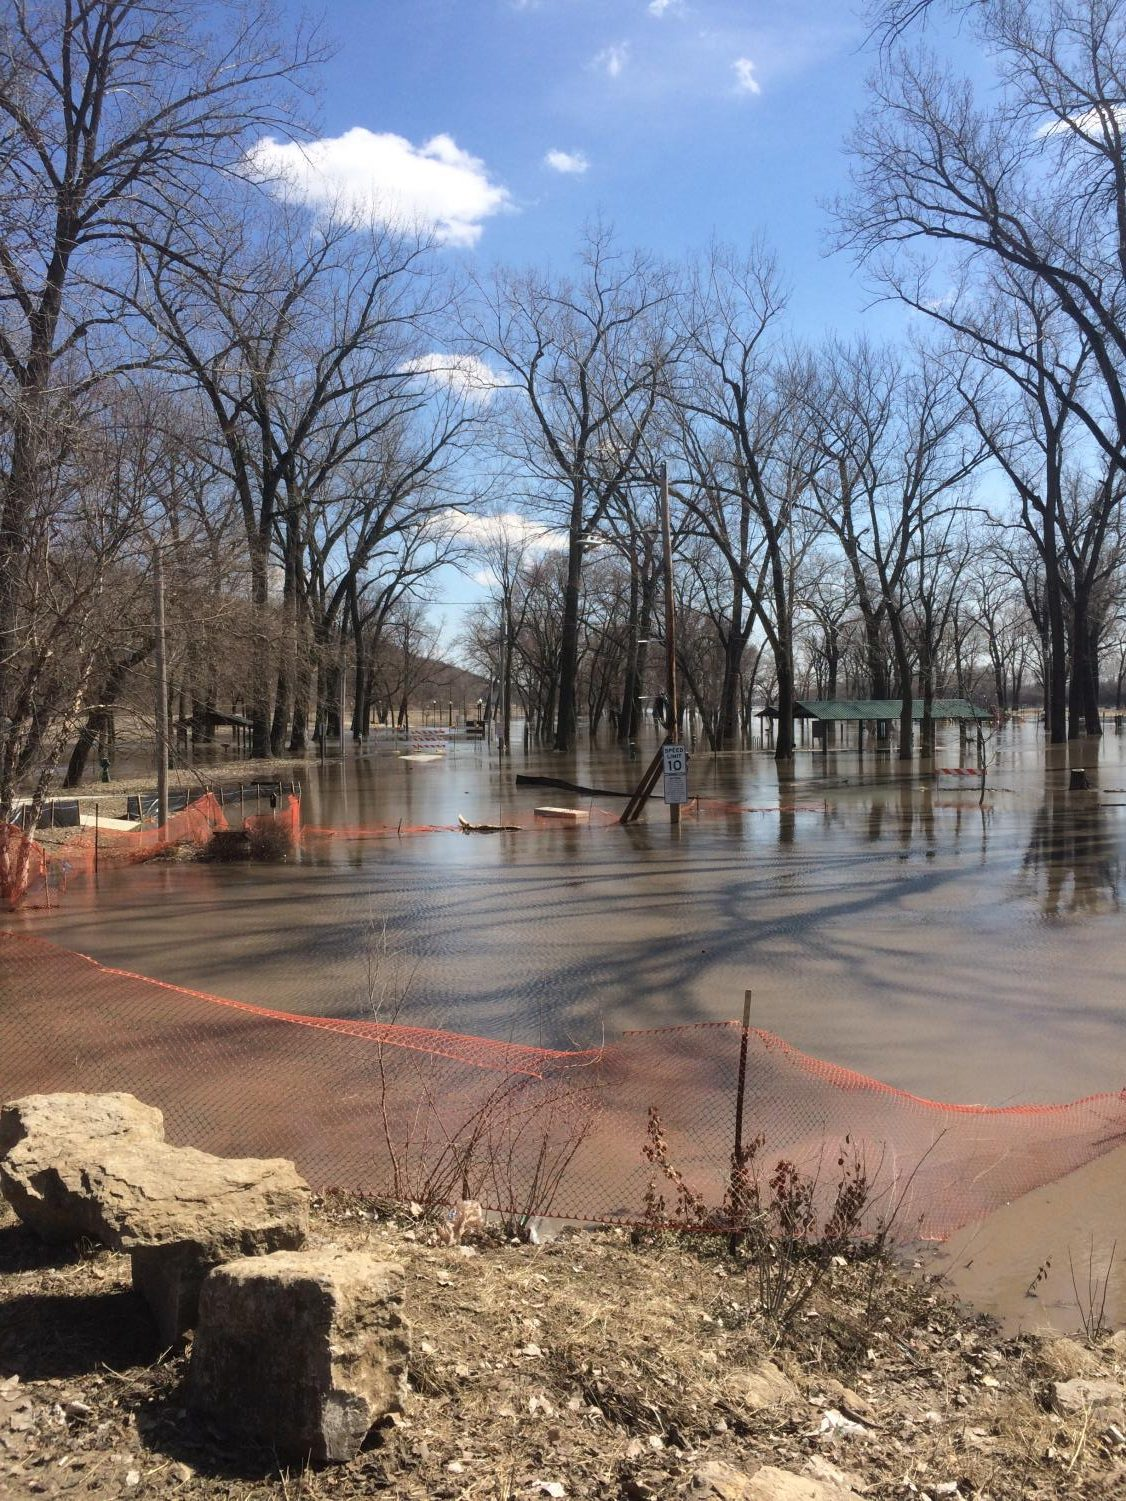 English Landing Park completely underwater as a result of the harsh weather conditions this winter